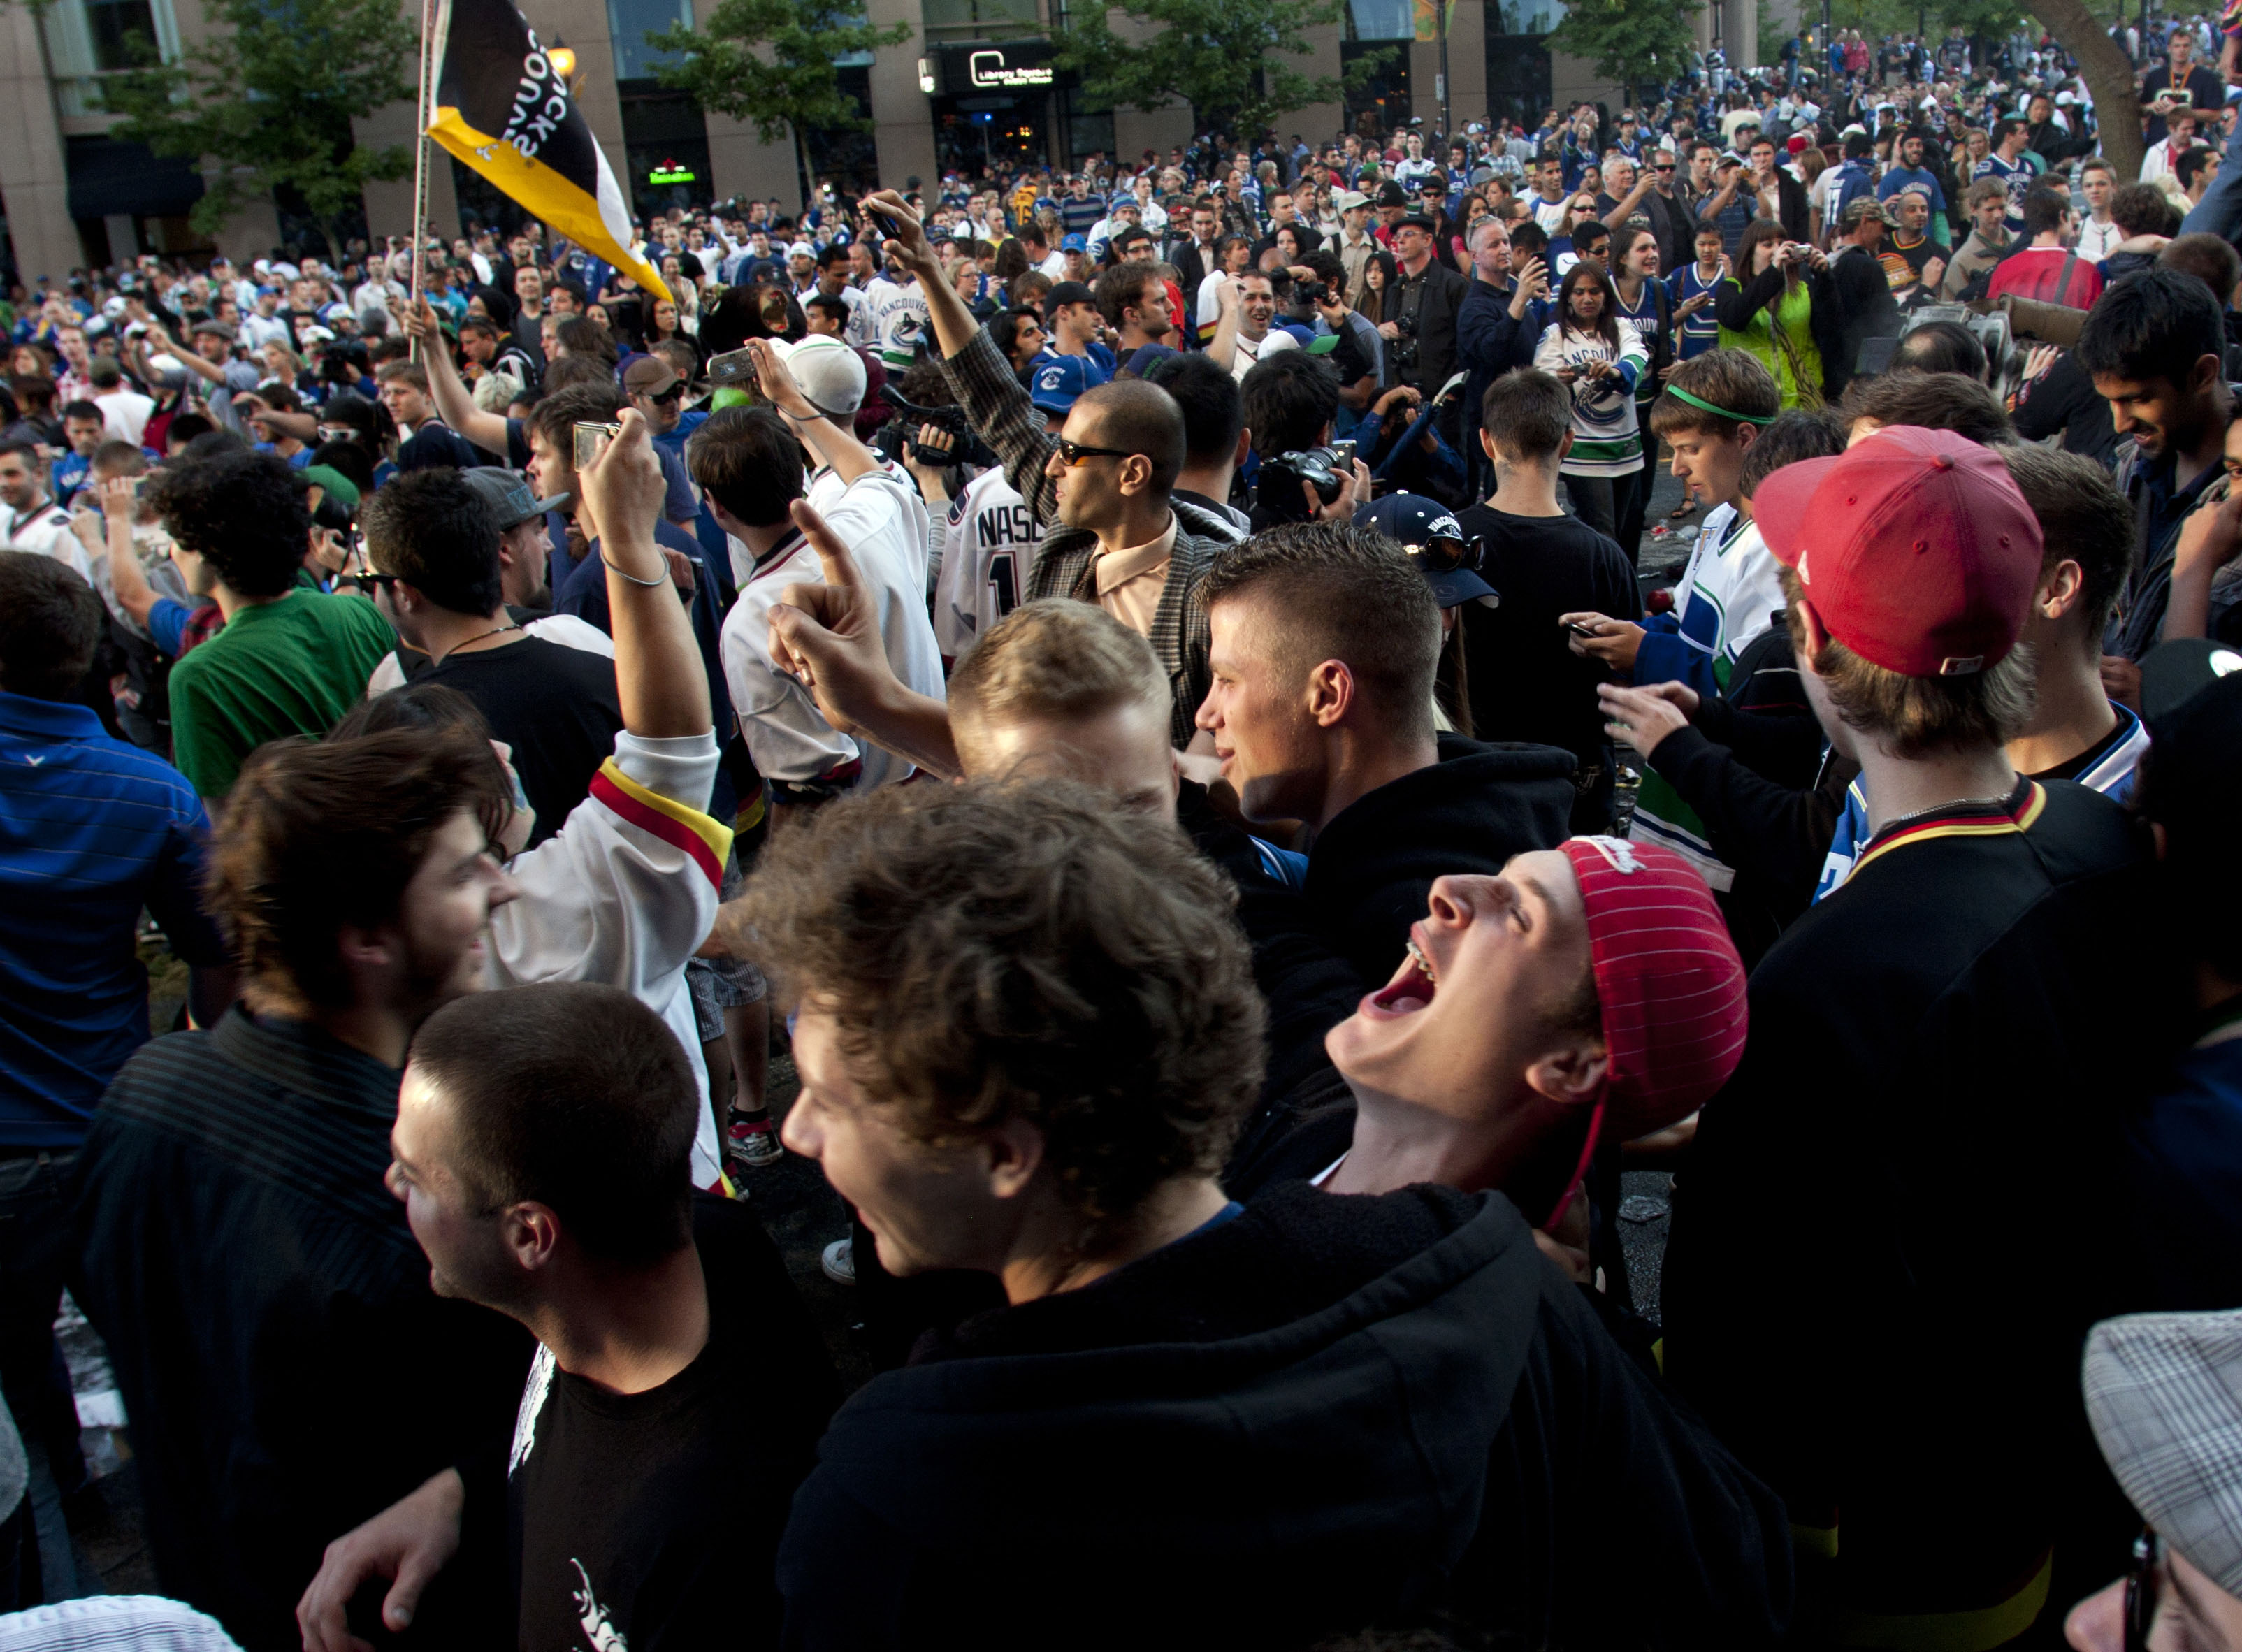 As a riot starts to begin the crowd gets rowdy on downtown streets of Vancouver,BC after the Canucks were defeated by the Boston Bruins in the Stanly Cup on June 15, 2011. (photo copyright Karen Ducey)